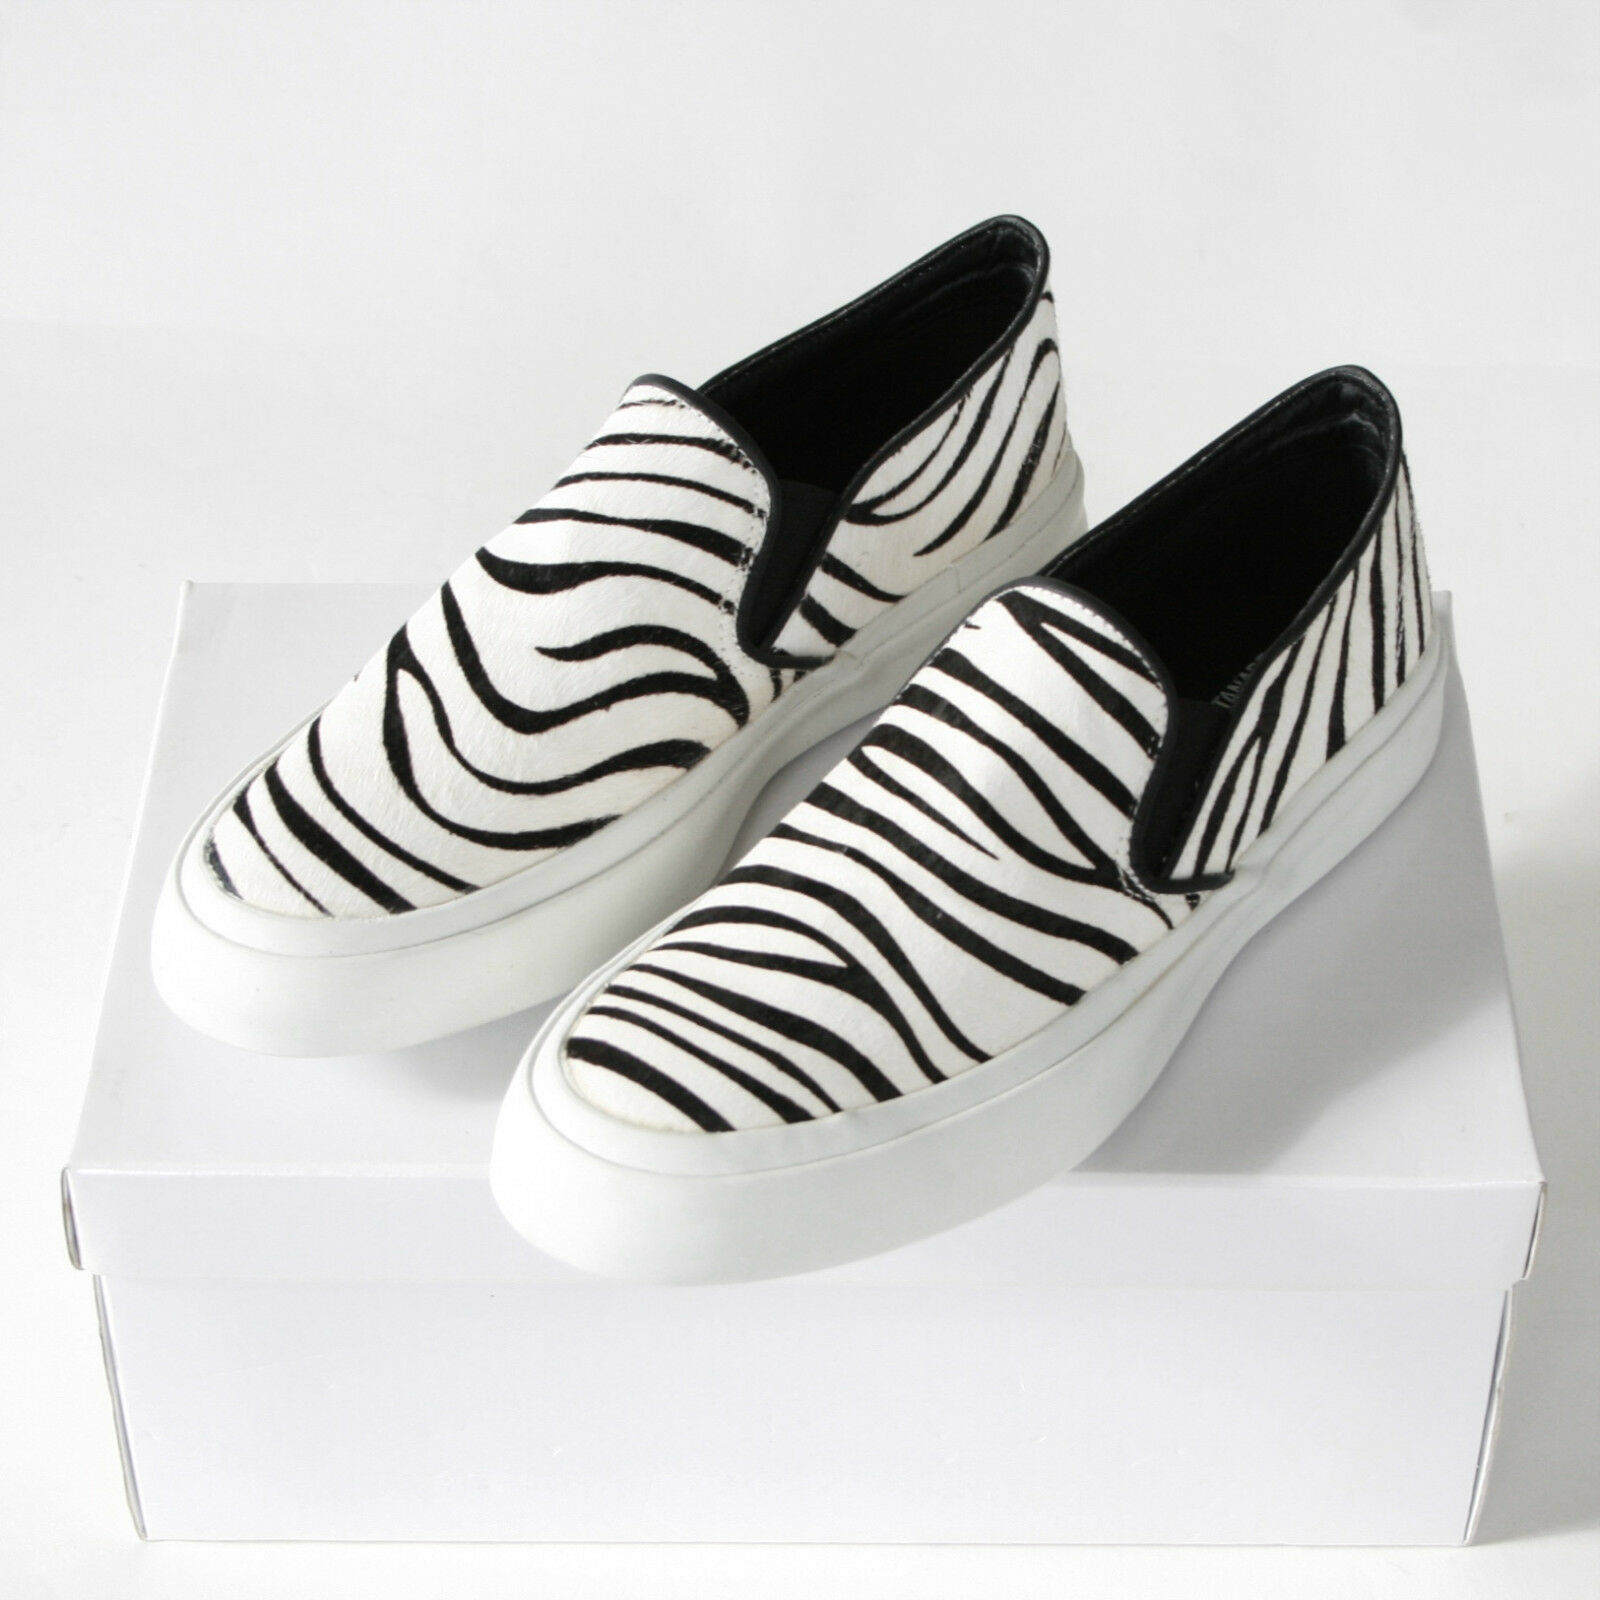 JUNYA WATANABE Comme des Garcons calf hair cowhide zebra slip on shoes M NEW